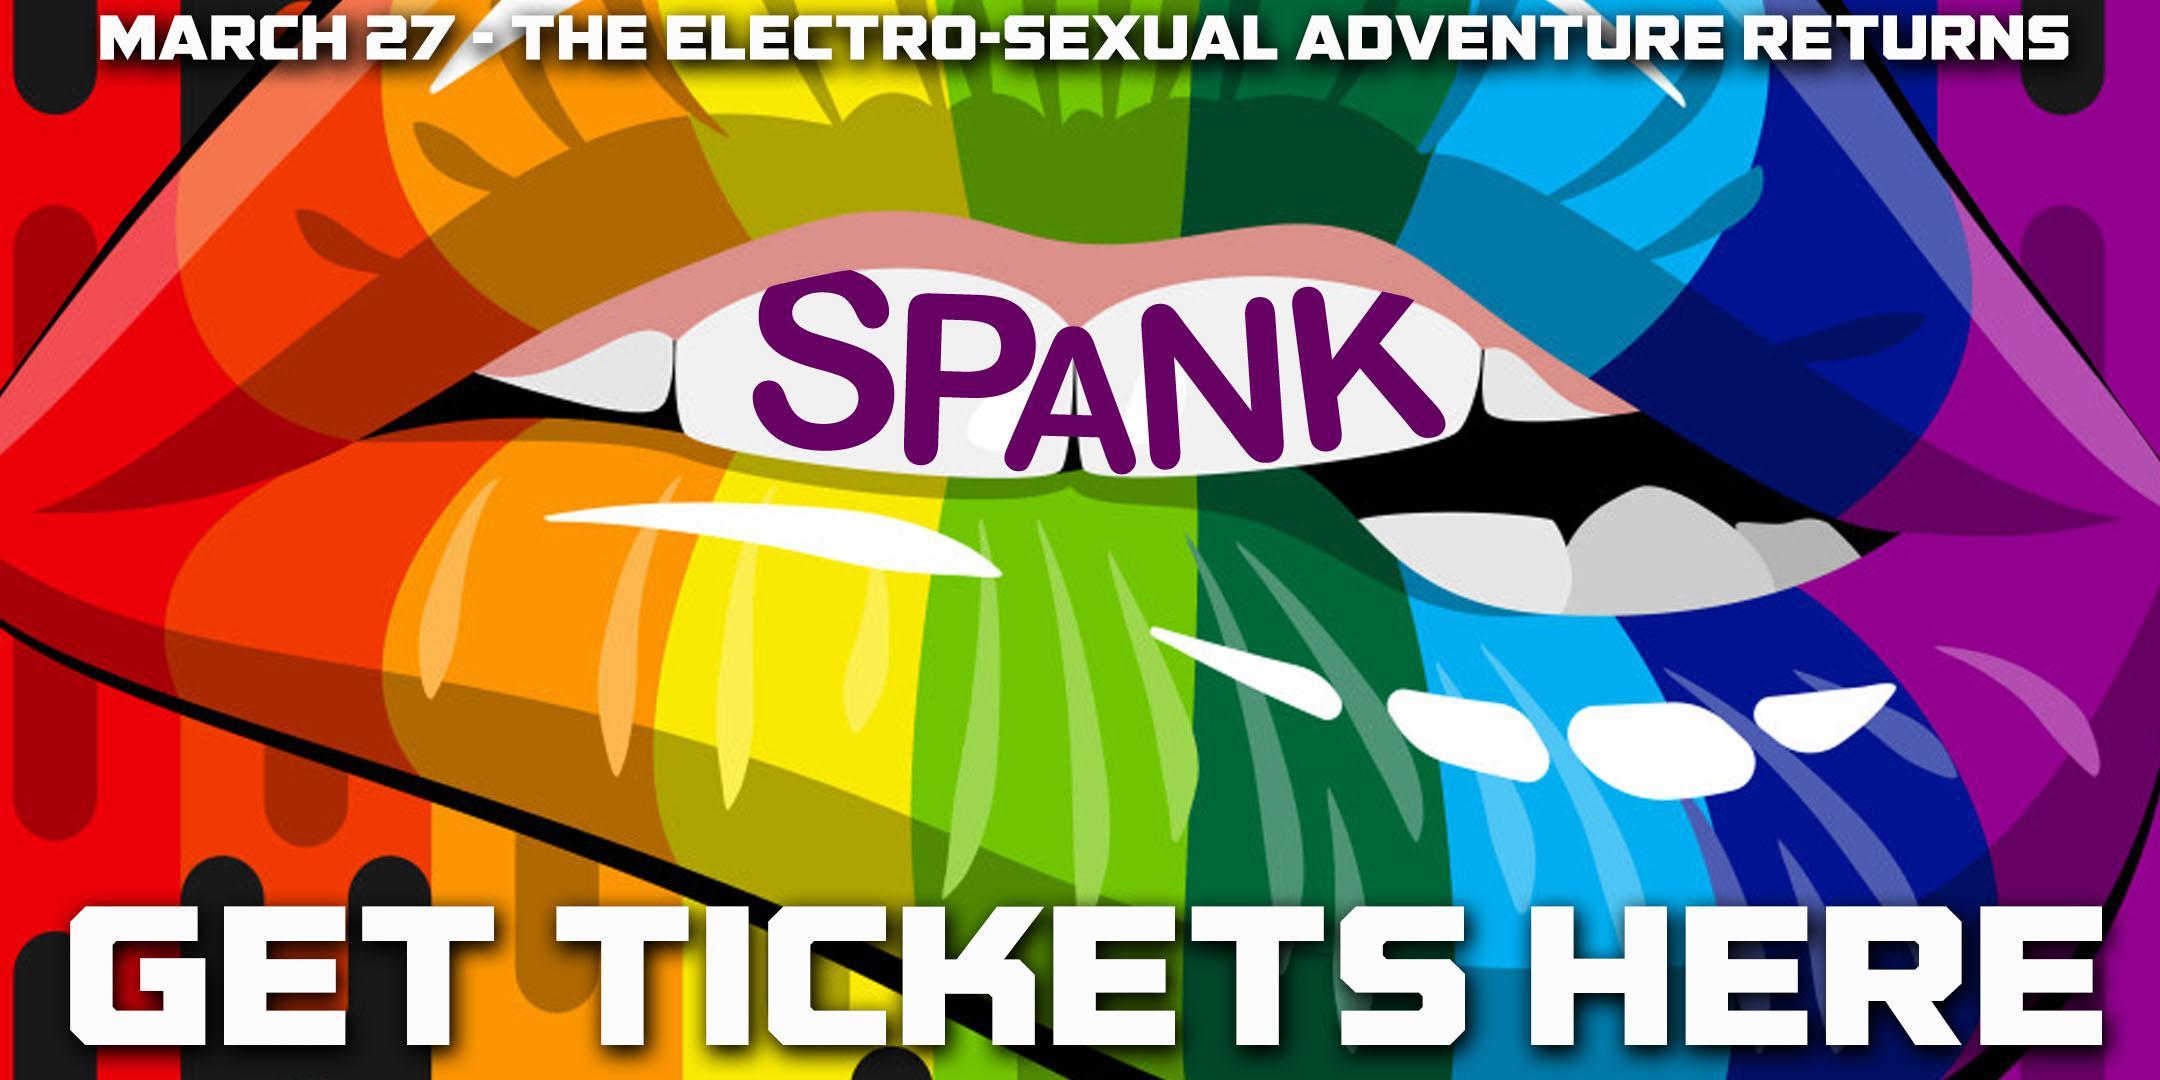 SPANK! - MARCH 27 - ONLINE TICKETS